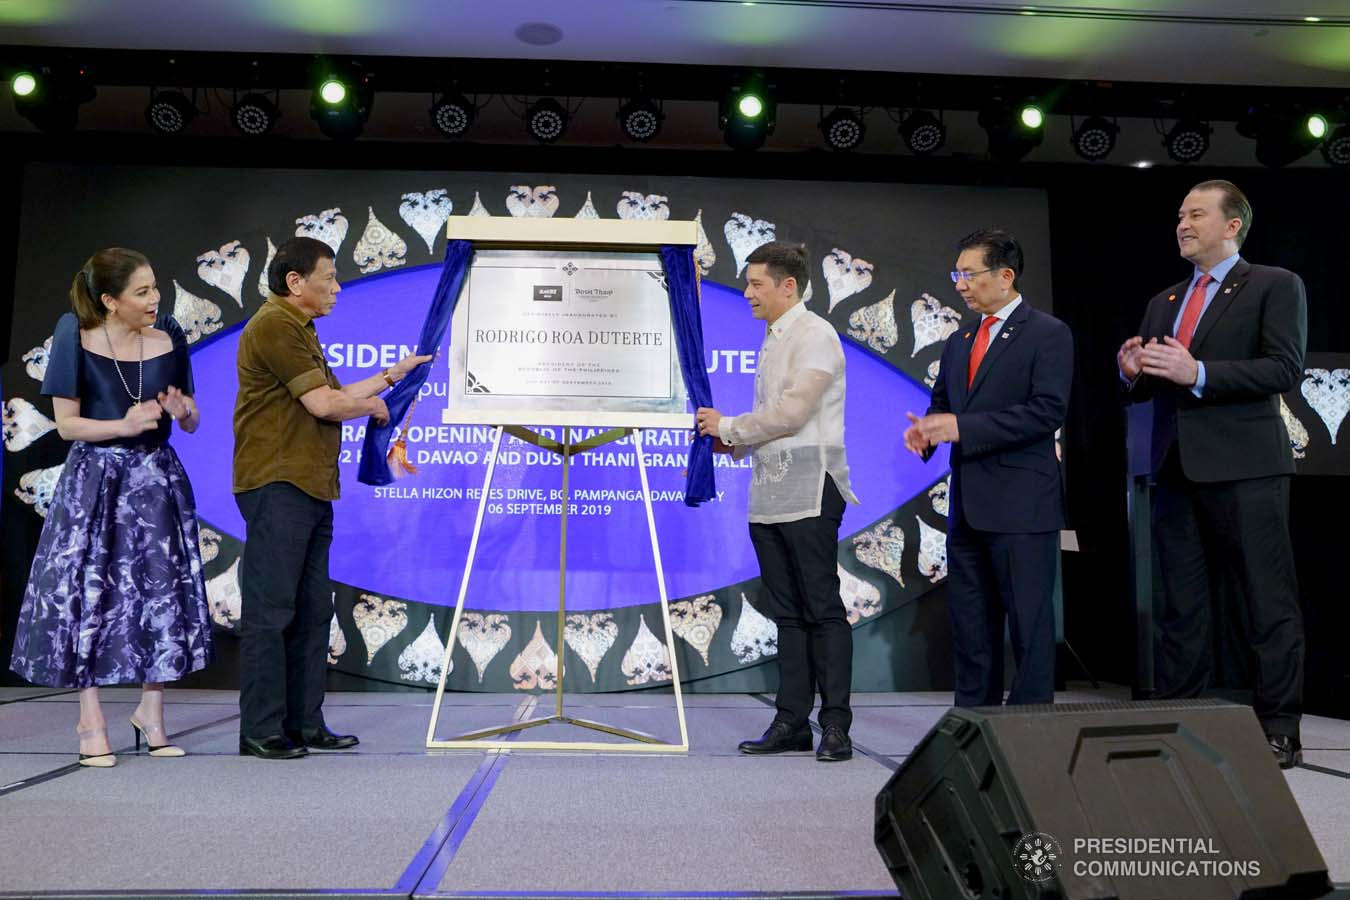 President Rodrigo Roa Duterte leads the unveiling of the marker of the Dusit D2 Davao Hotel during its inauguration in Davao City on September 6, 2019. Assisting the President are Tourism Secretary Bernadette Romulo-Puyat, Torre Lorenzo Development Corporation (TLDC) CEO Tomas Lorenzo, Dusit International COO Boon Kwee Lim, and dusitD2 Davao Hotel and Dusit Thani Residence Davao General Manager Christopher Wichlan. JOEY DALUMPINES/PRESIDENTIAL PHOTO